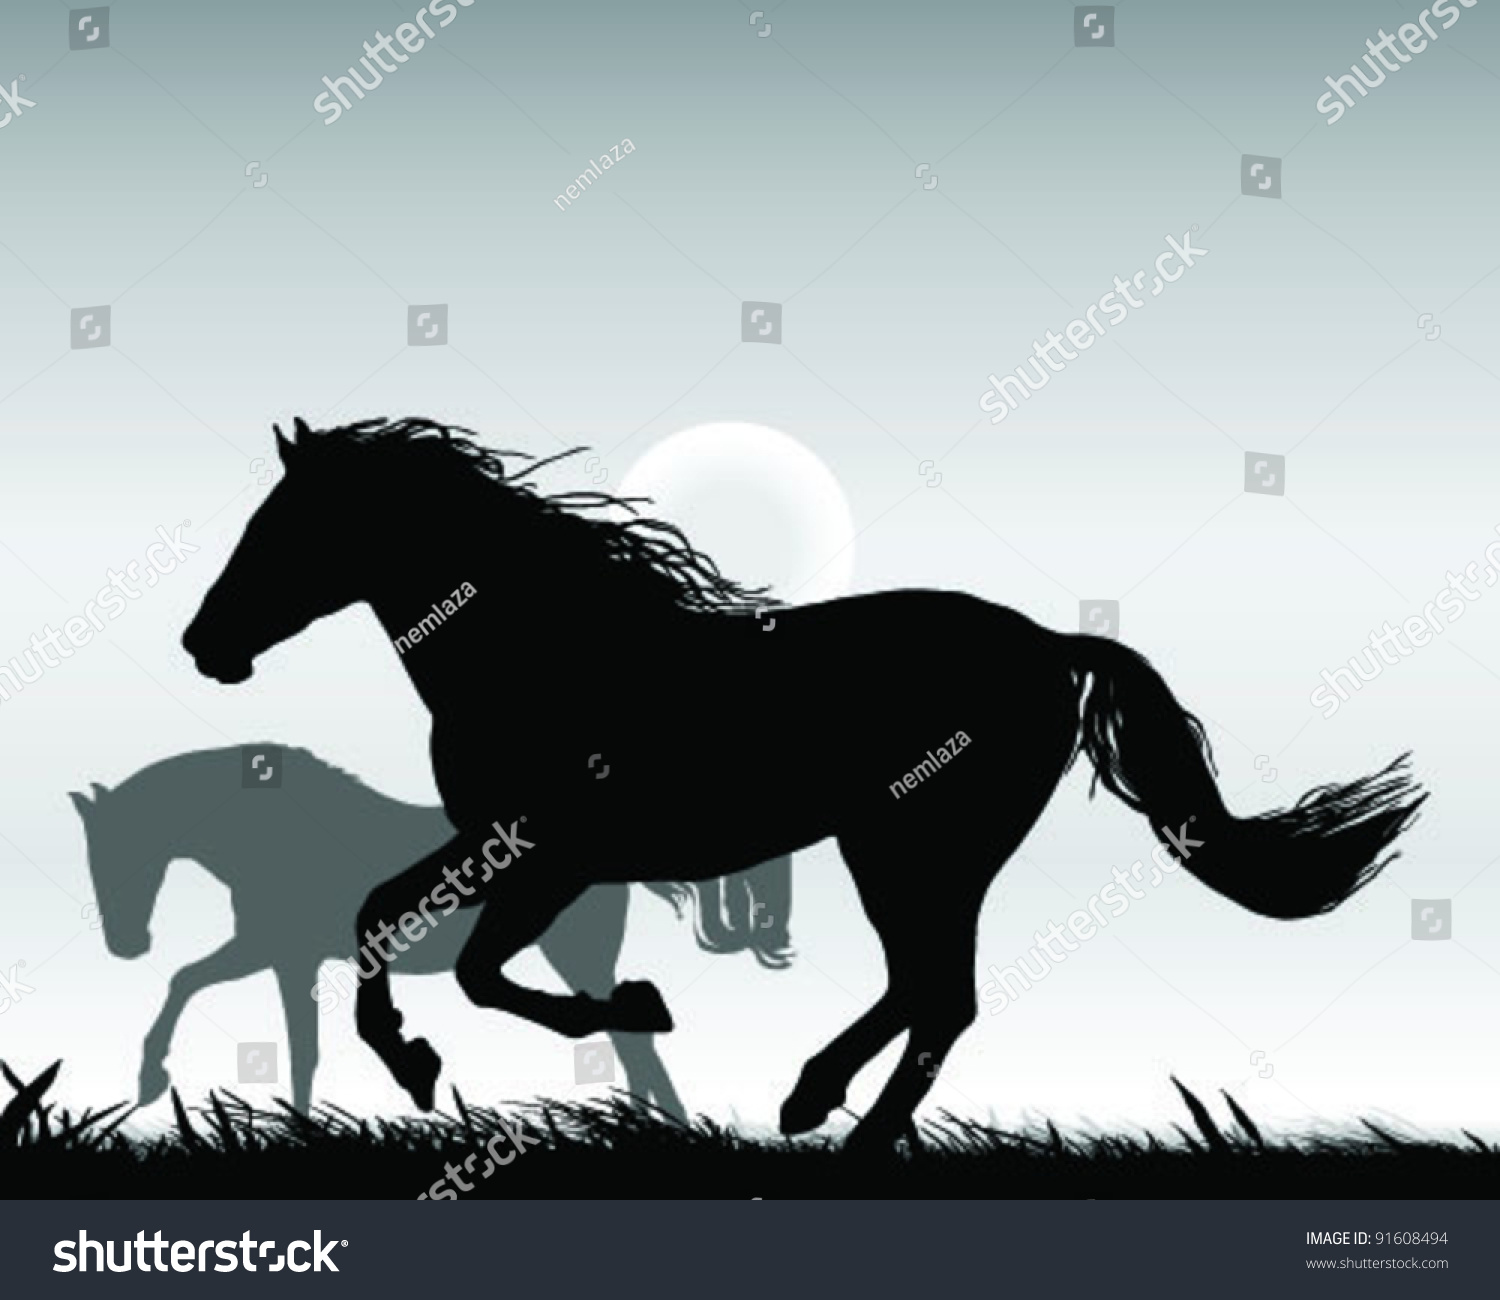 Horse silhouette galloping